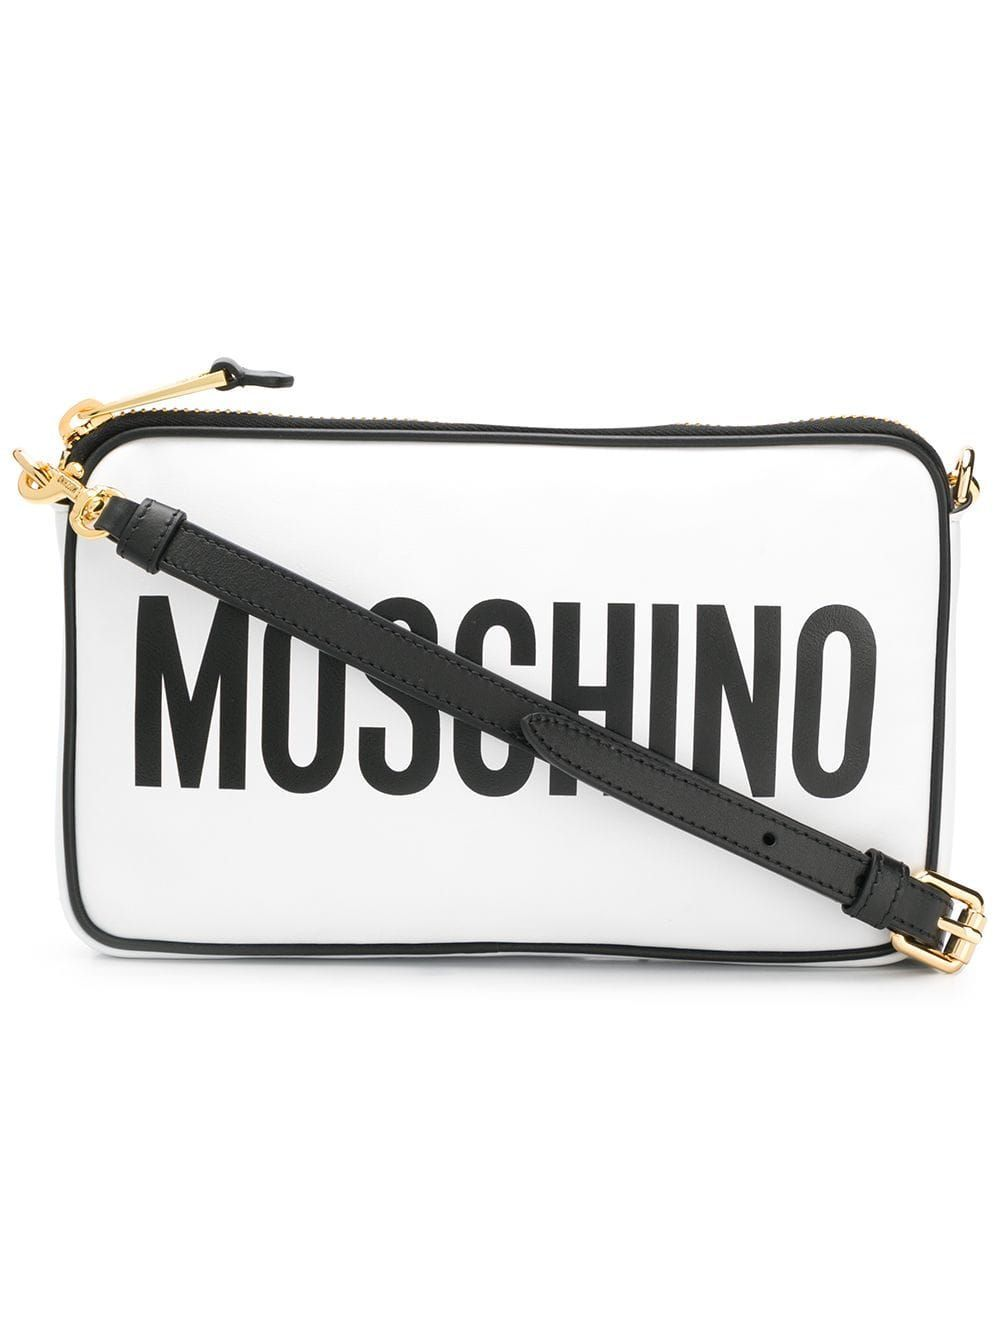 MOSCHINO WOMEN'S A741780011001 WHITE LEATHER SHOULDER BAG